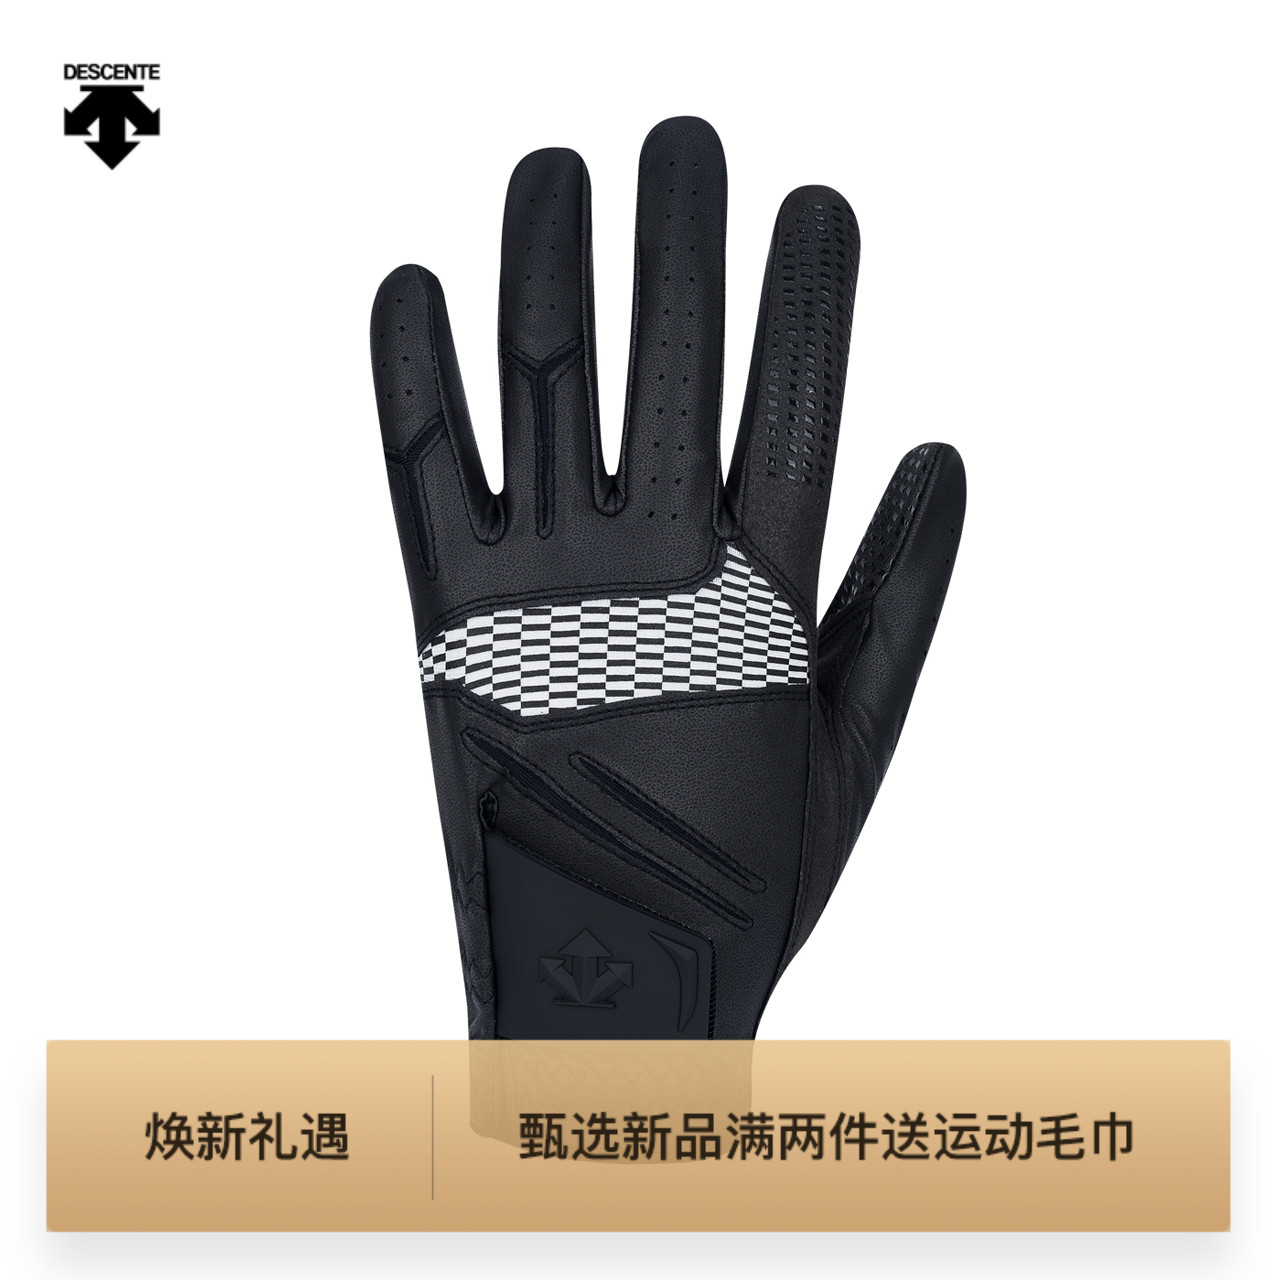 DESCENTE GOLF DESANT GOLF MENS SPORTS GLOVES G112MFGL12